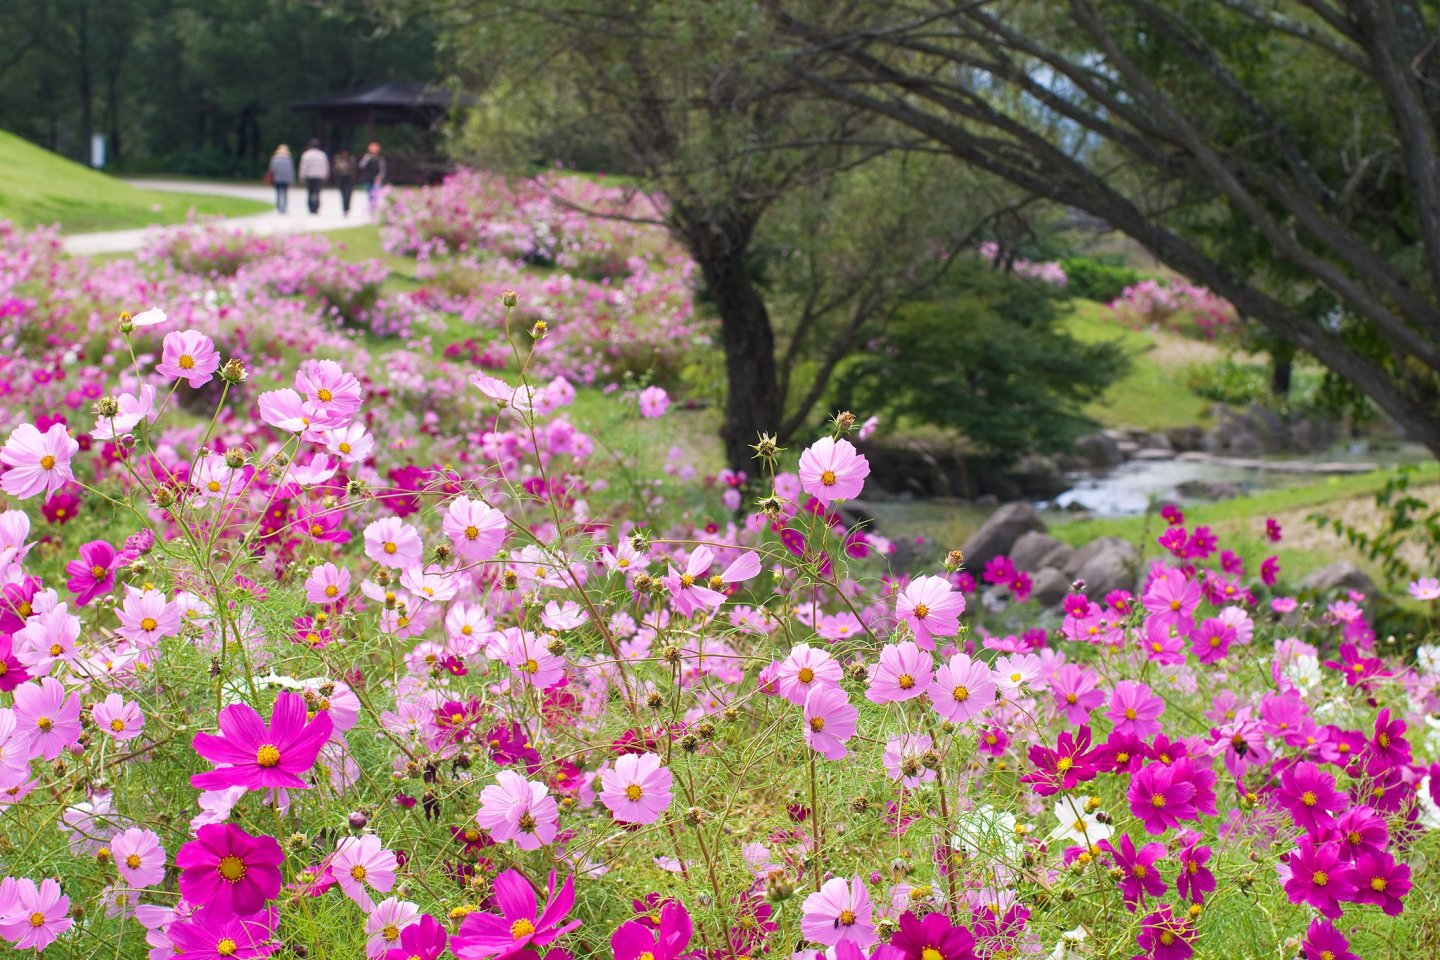 Autumn at Sanuki Mannou Park is filled with beautiful cosmos flowers